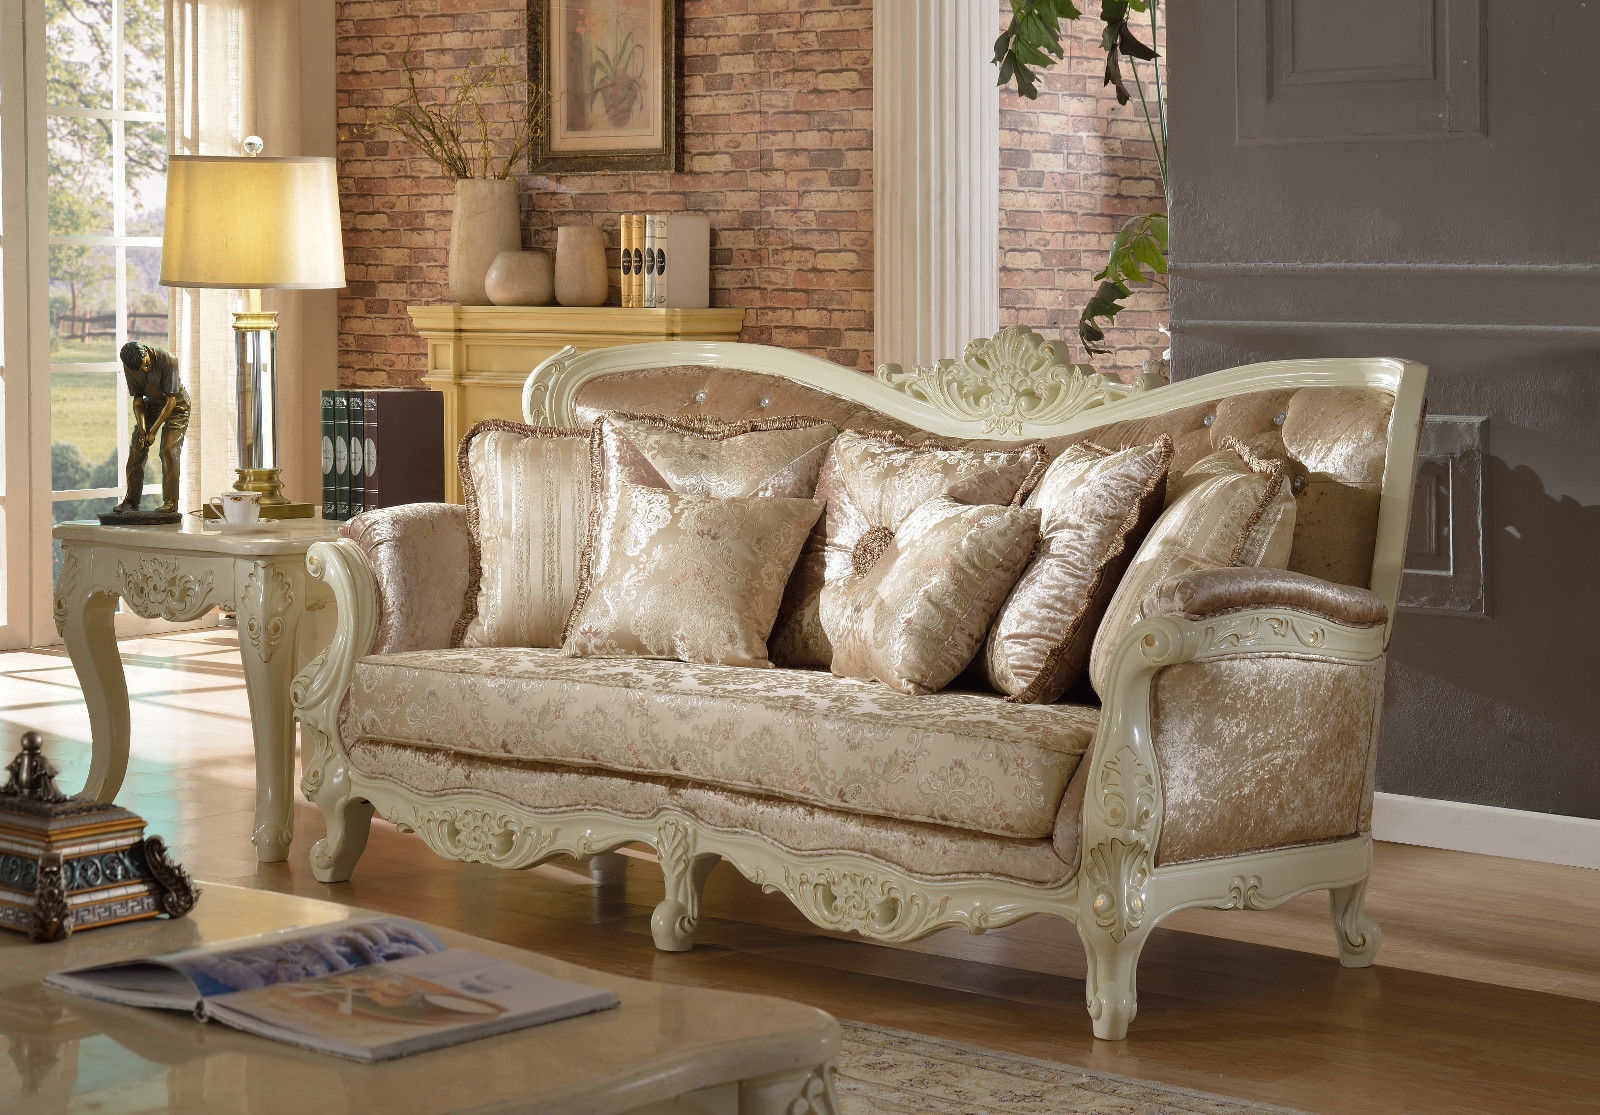 Meridian 687 Living Room Sofa Set 2pc. Tufted Pearl White Chic Traditional Style